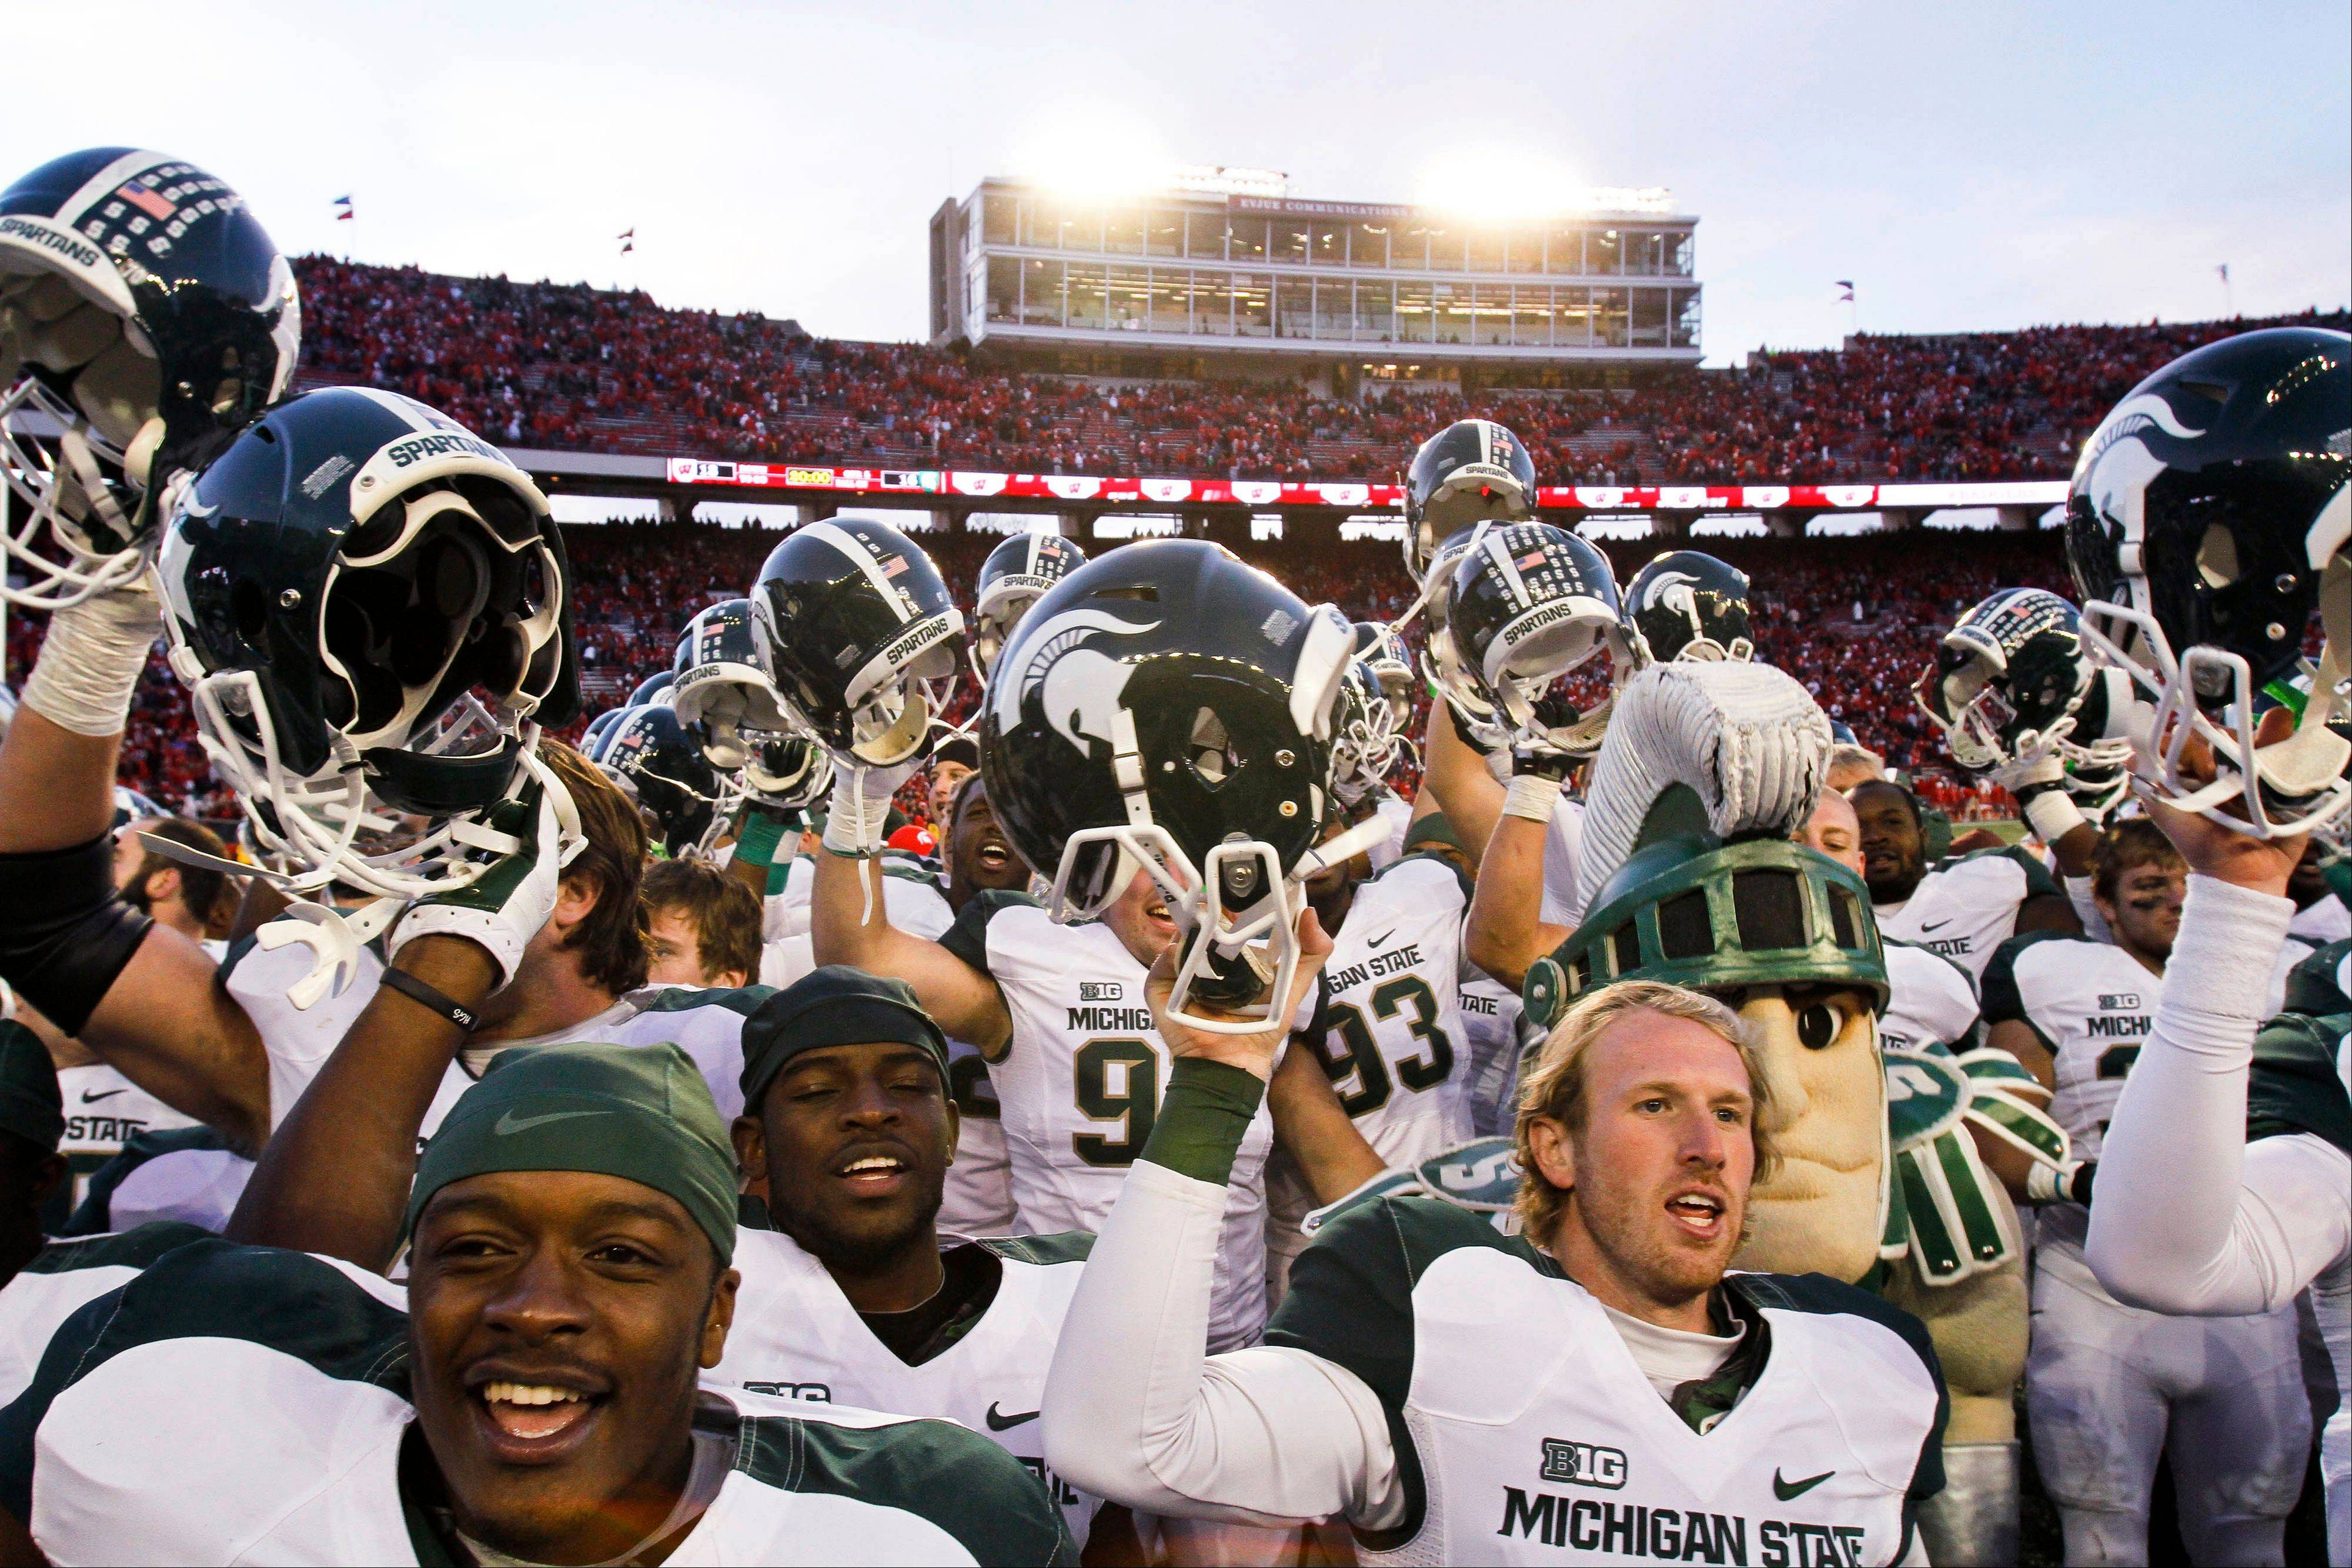 Michigan State players celebrate after defeating Wisconsin 16-13 in overtime in Madison, Wis.